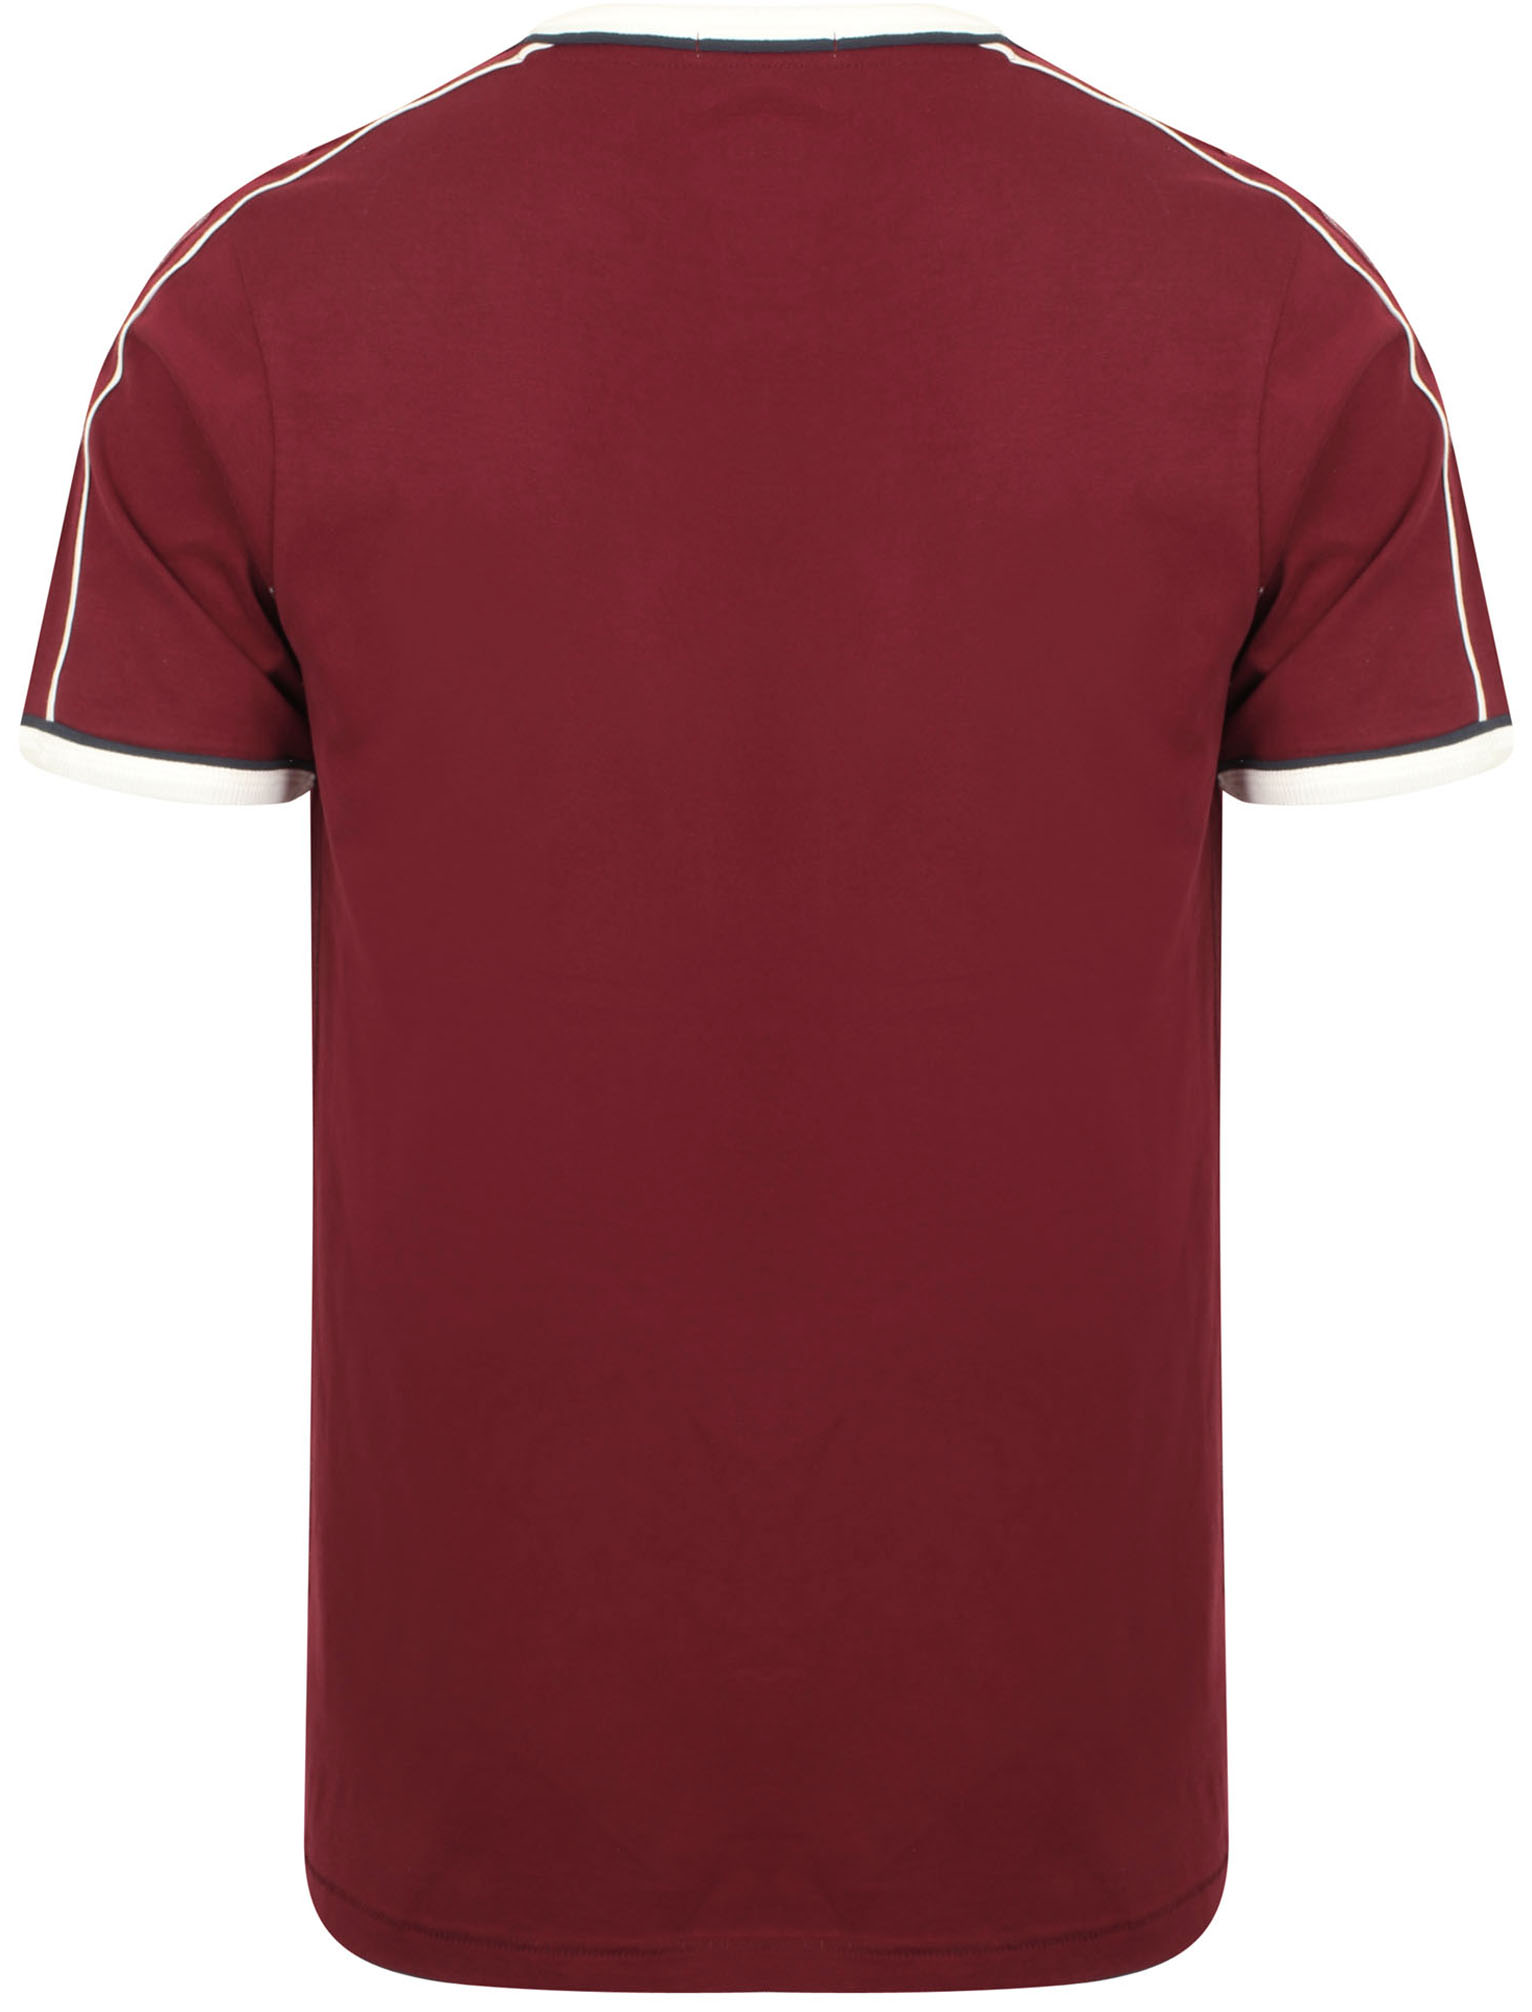 New-Men-039-s-Tokyo-Laundry-Fernfield-Cotton-Rich-Short-sleeves-T-shirt-Size-S-XL thumbnail 9